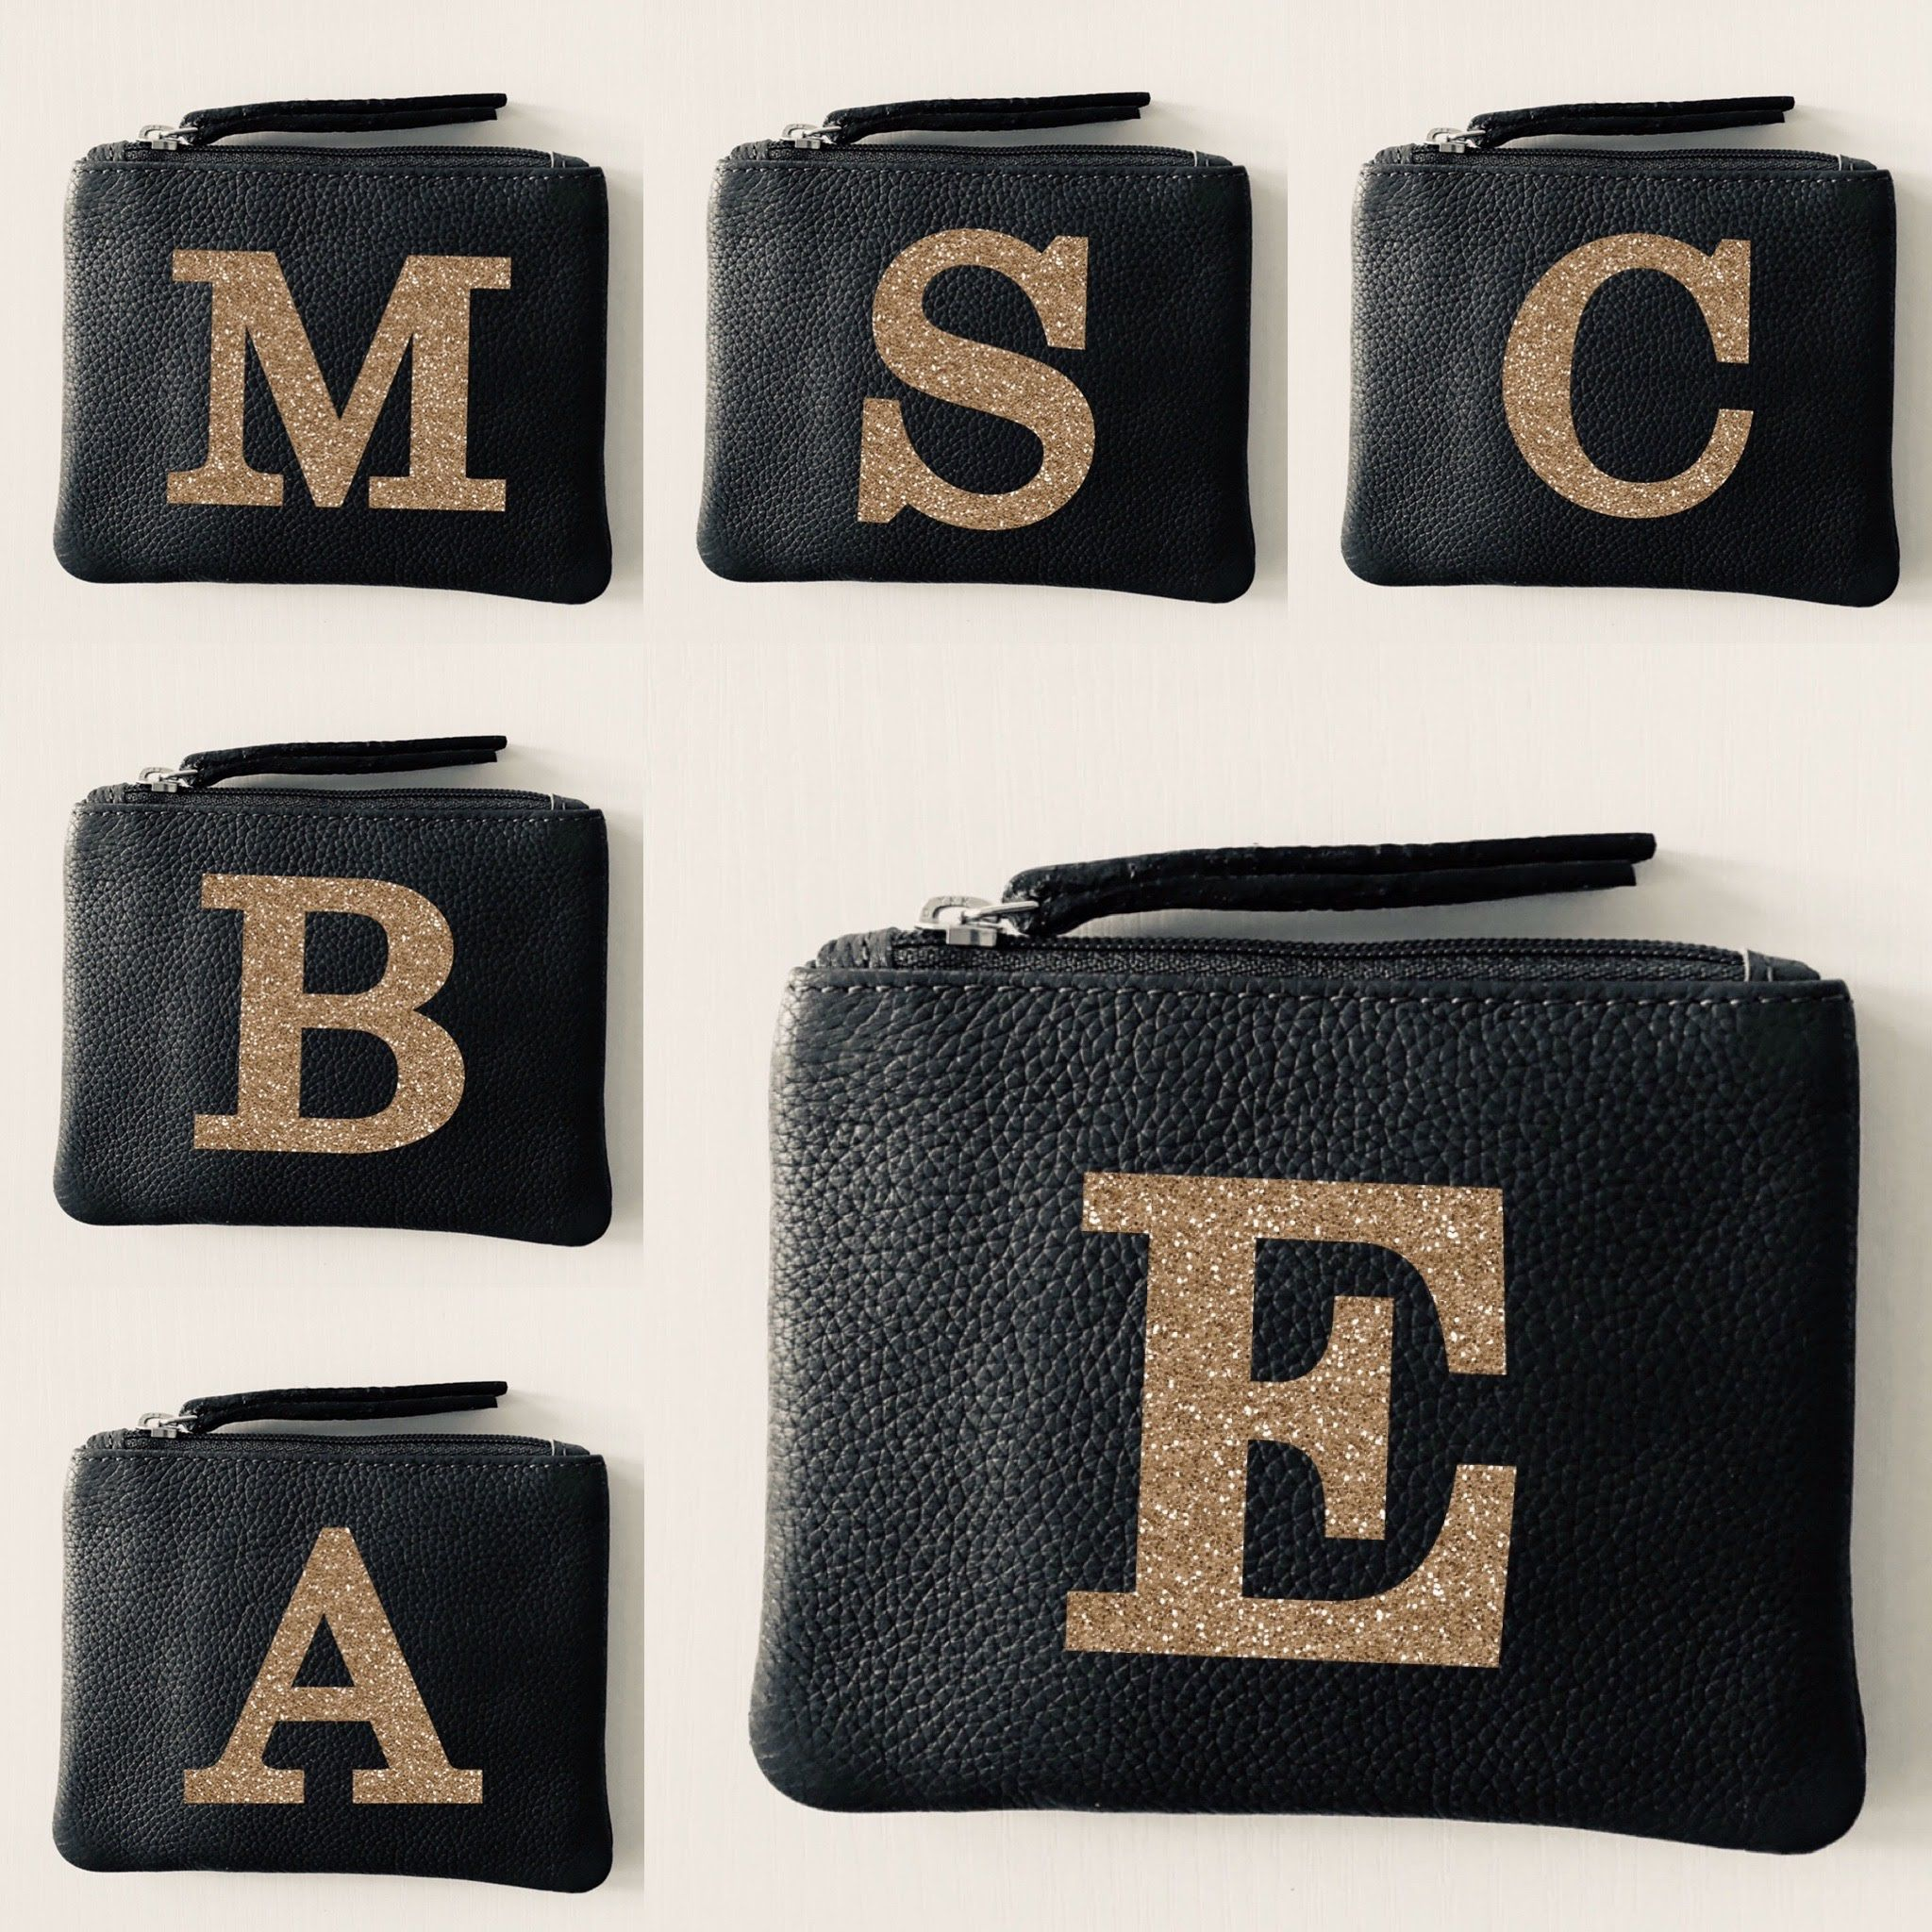 Alphabet Personalised Leather Coin Purse LBR101-Letter-1 Gold